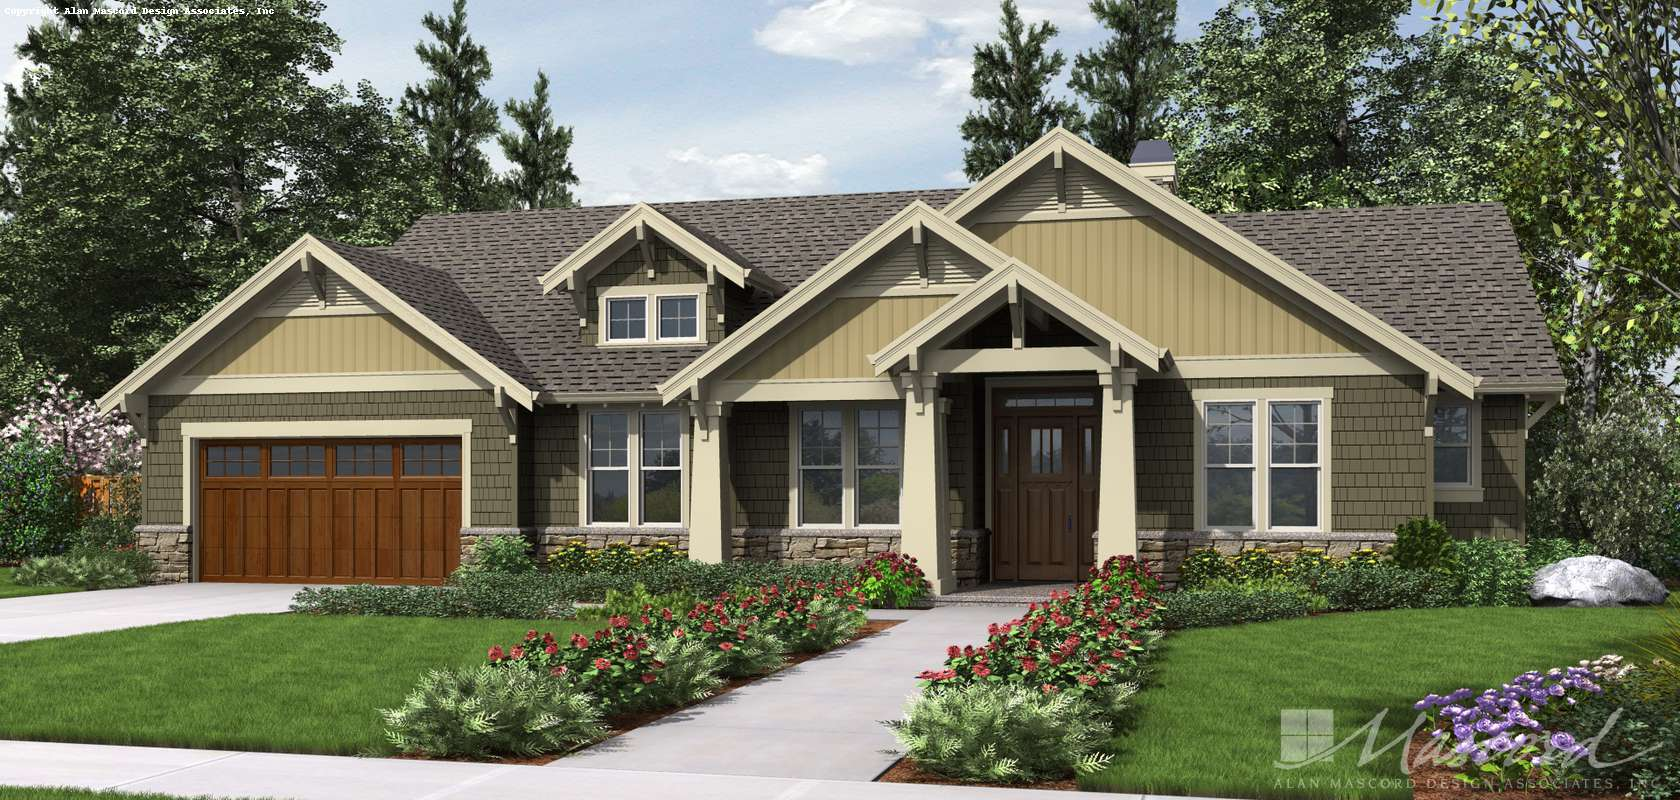 Mascord House Plan 1144EB: The Umatilla